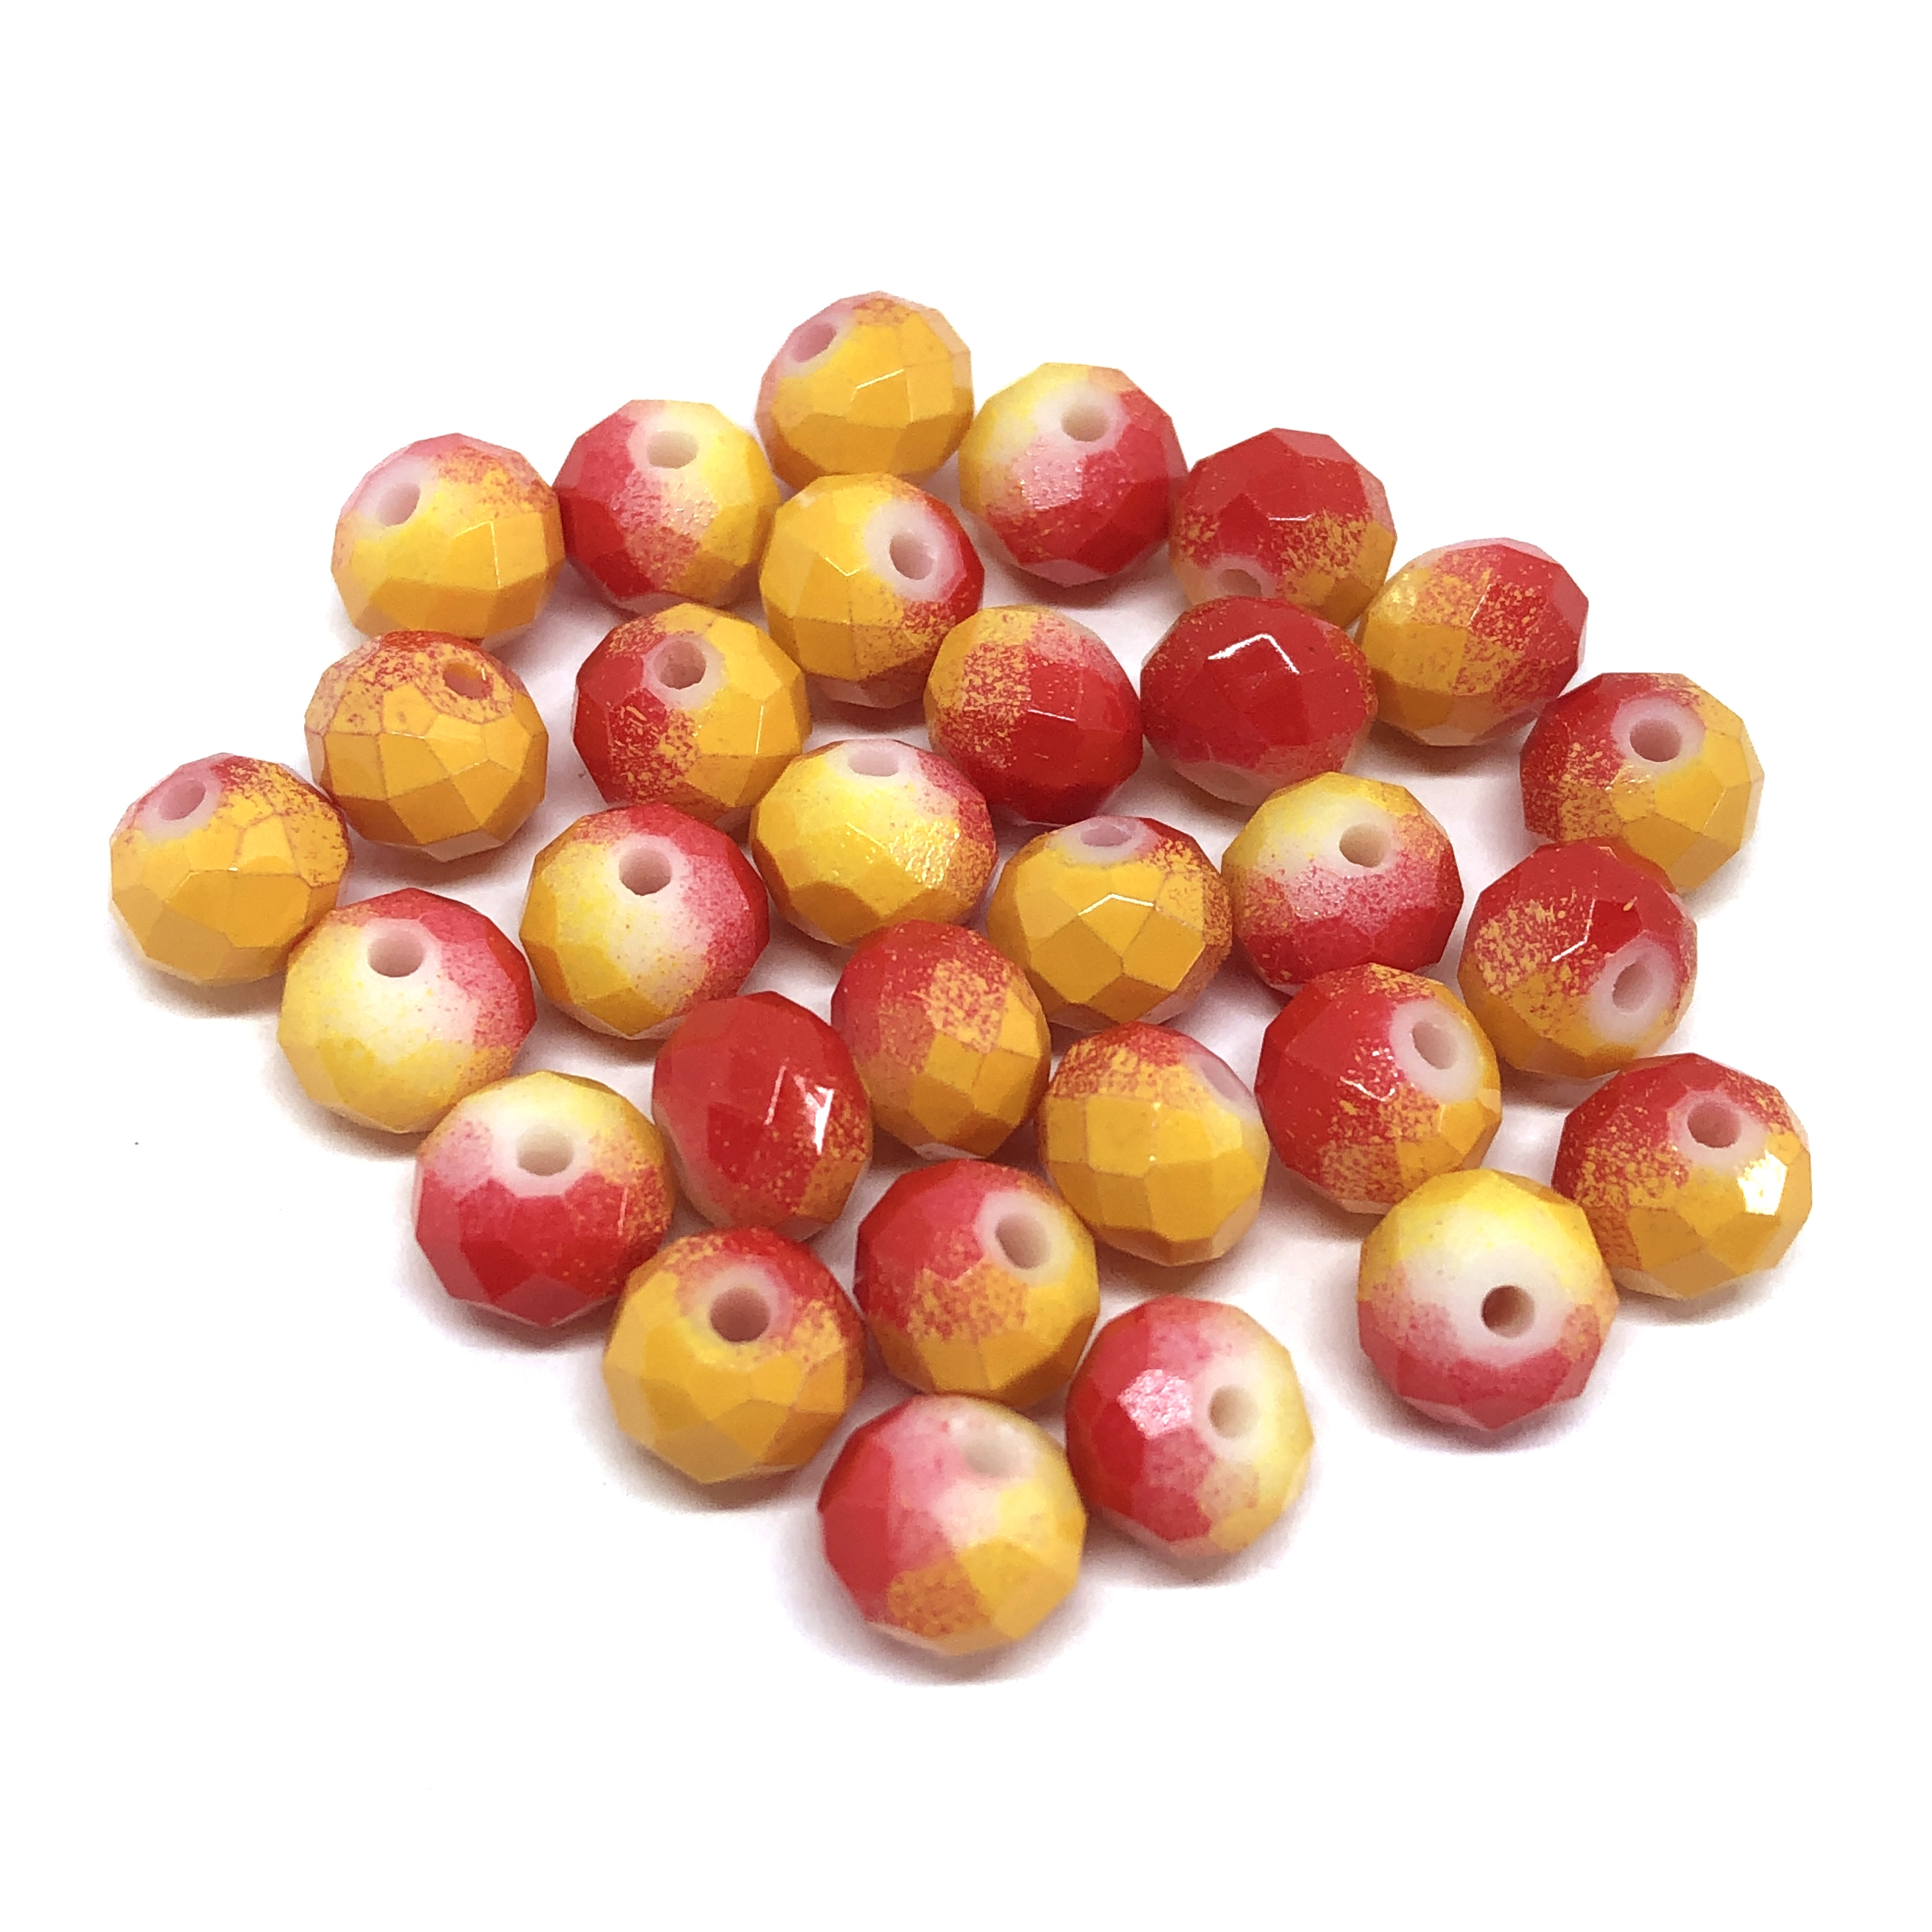 Faceted glass beads, glass beads, beading supplies, two tone beads, red and yellow, jewelry making, jewelry supplies, vintage supplies, B'sue, rondelle beads, 8mm, faceted beads, 0351, beads